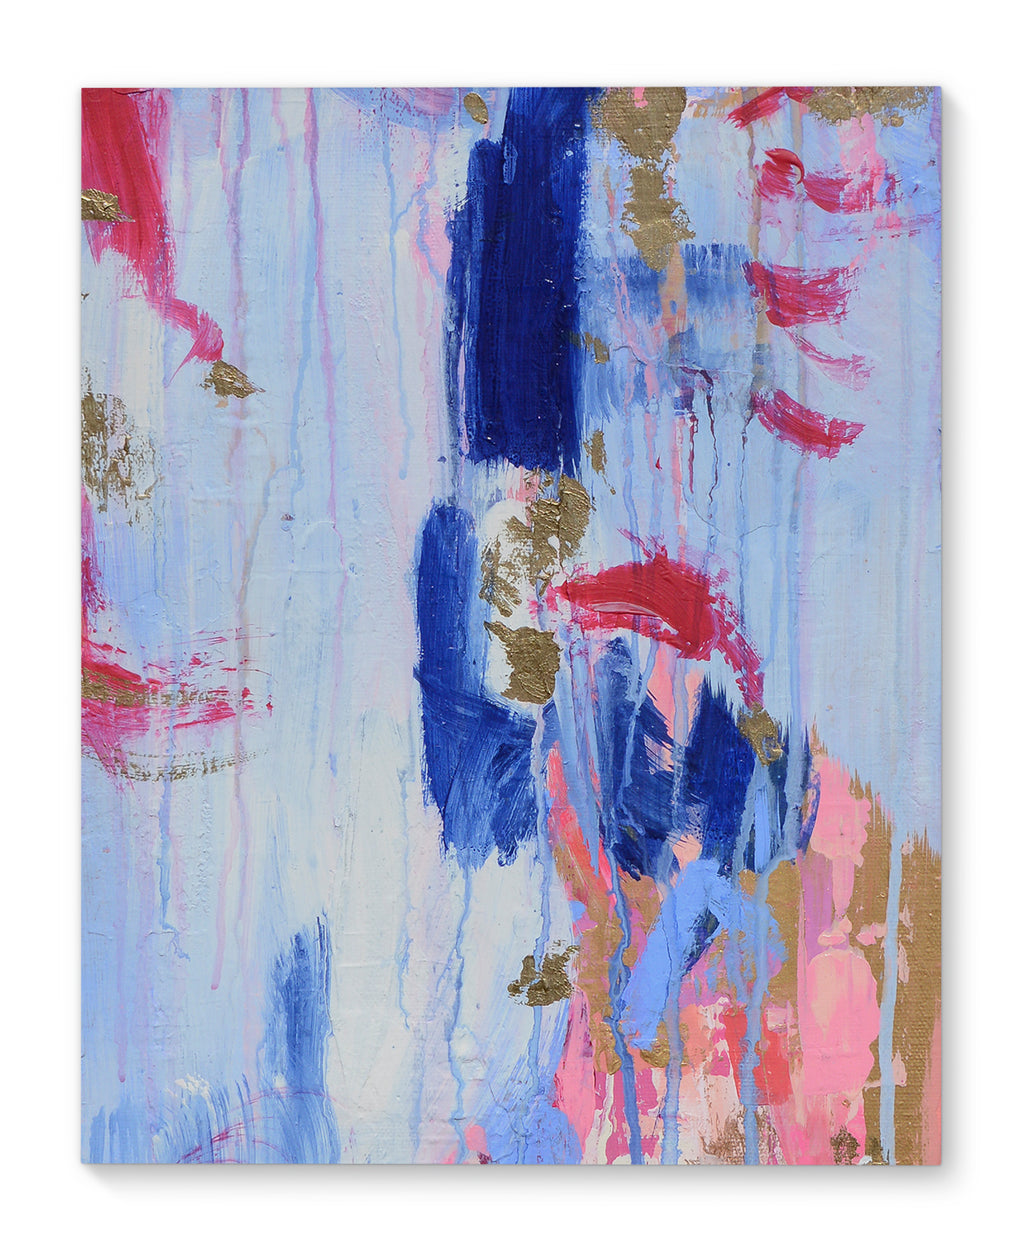 HENDRIX PATRIOTISM Premium Canvas Gallery Wrap By Susan Skelley